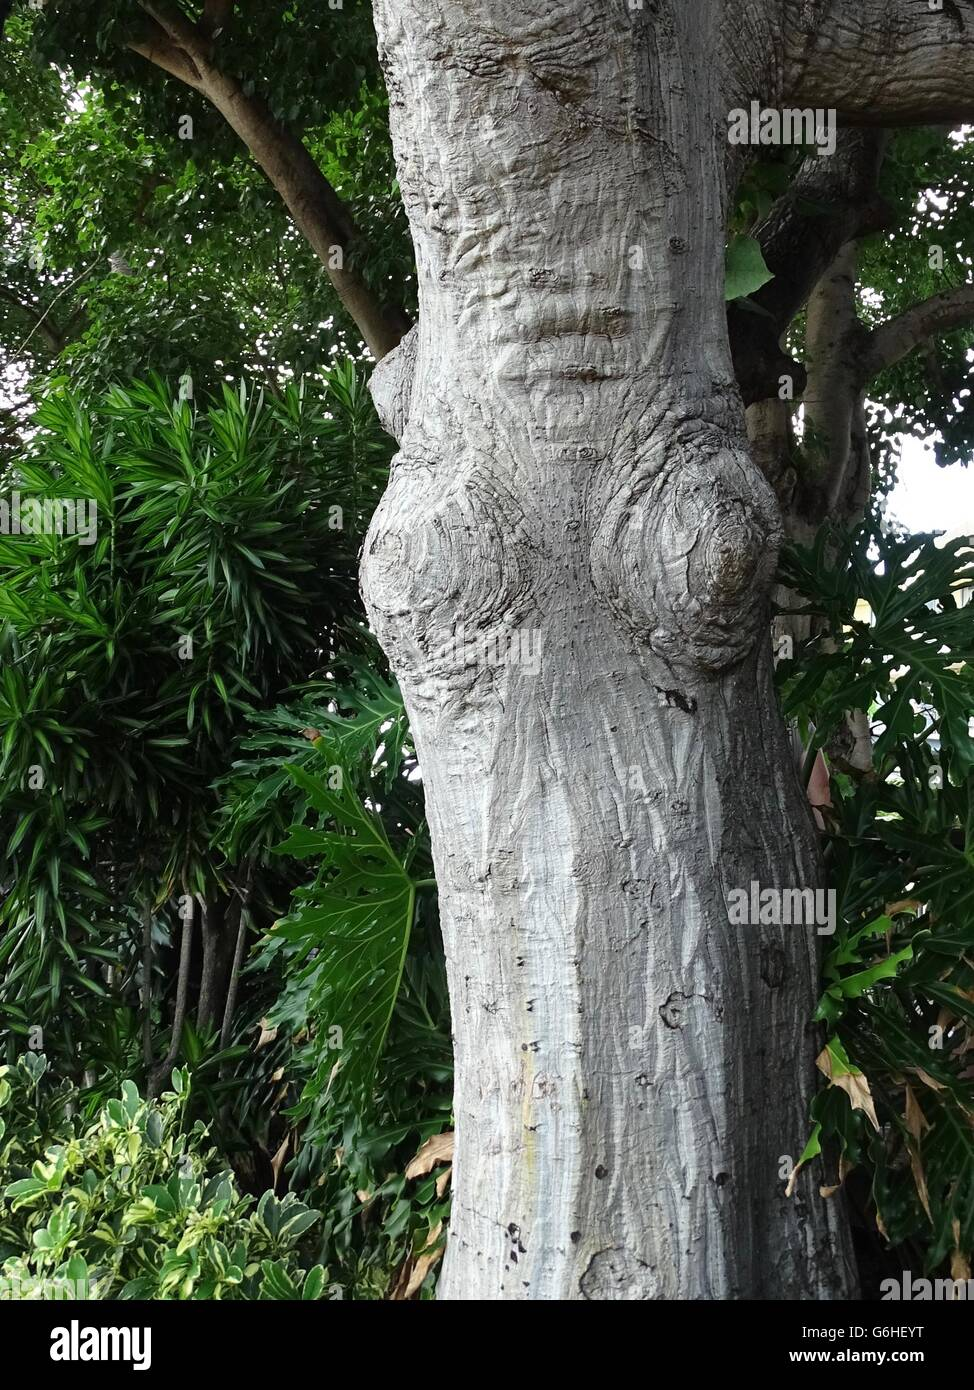 Knotty Tree in a Female Form - Stock Image